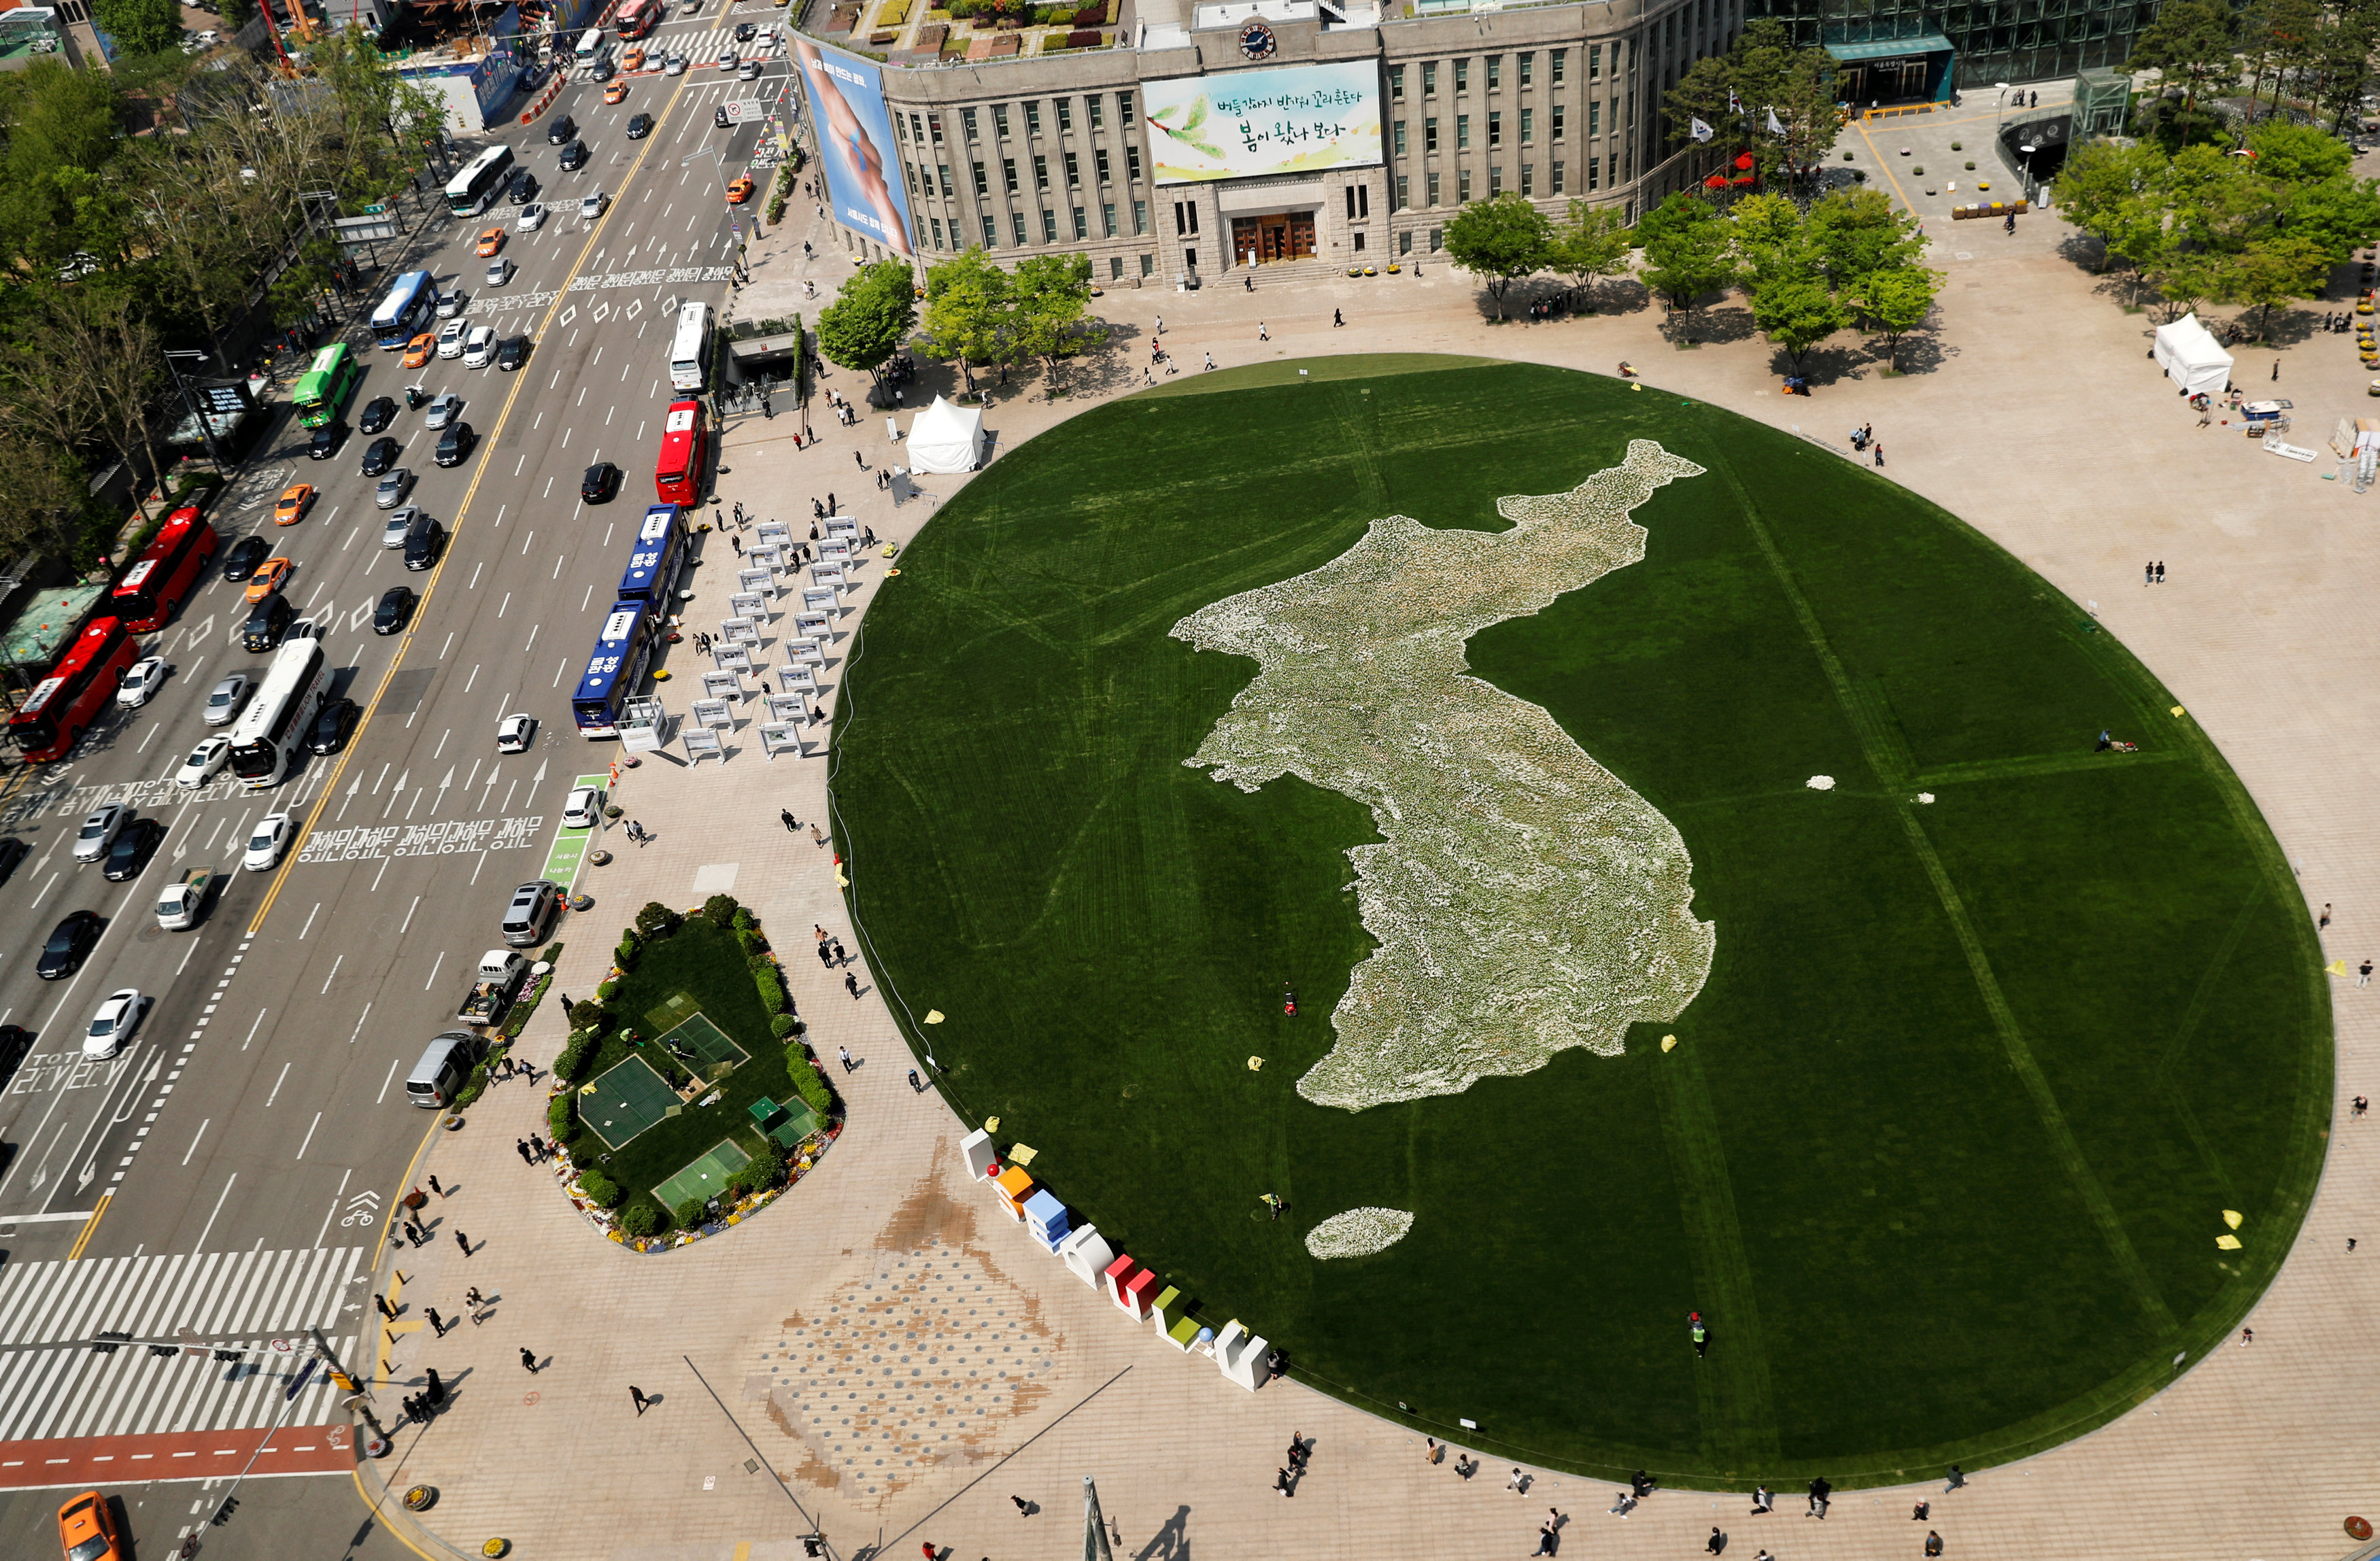 The shape of the Korean peninsula is seen on the lawn in front of City Hall ahead of the upcoming summit between North and South Korea in Seoul, South Korea April 25, 2018. REUTERS/Jorge Si